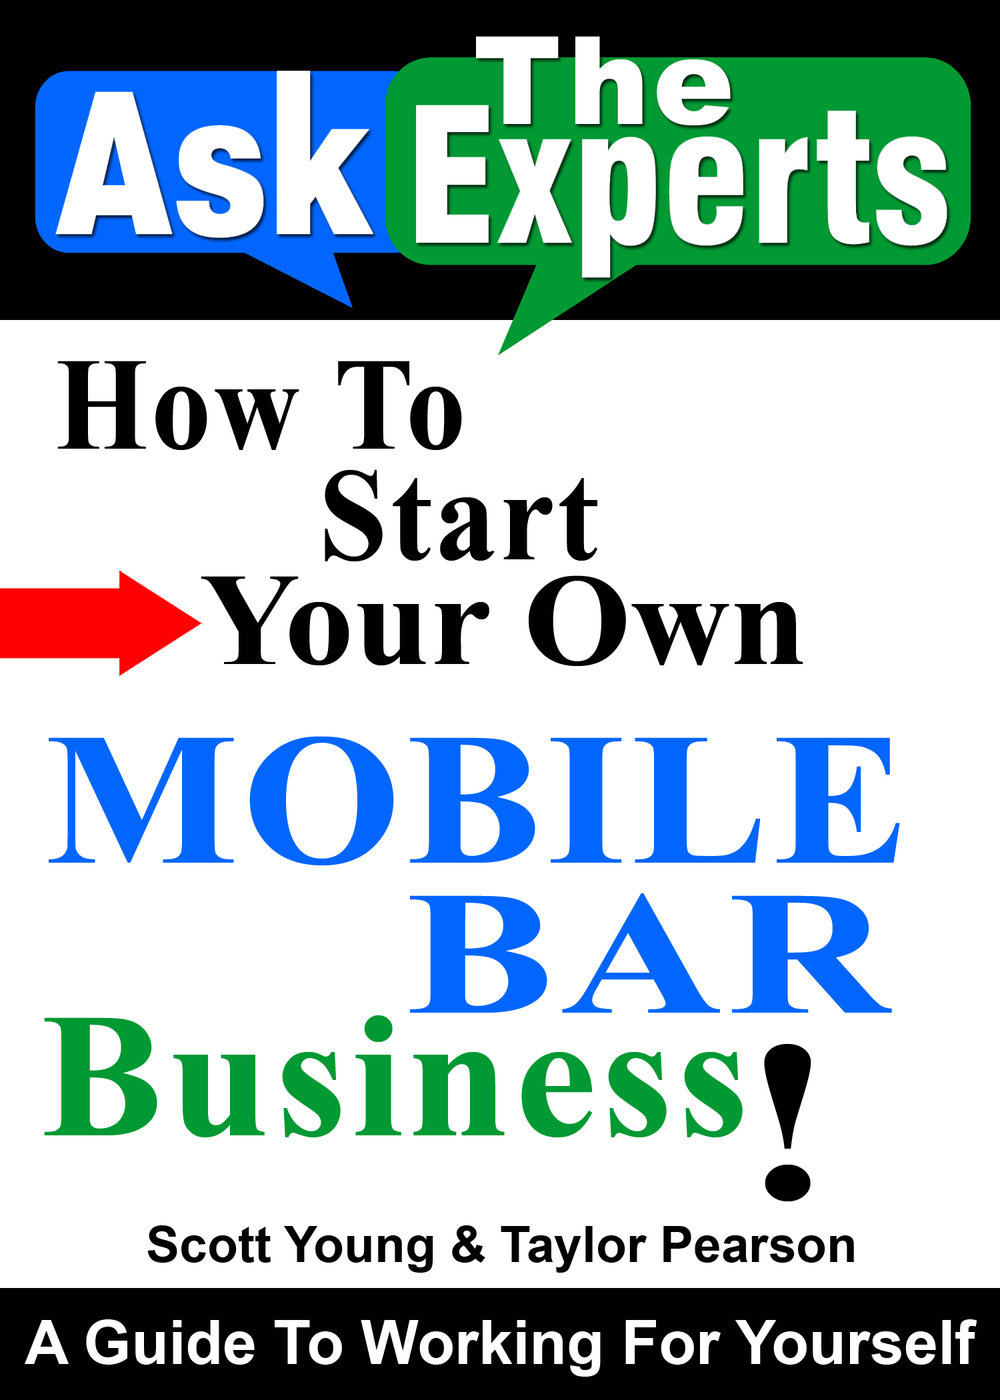 Ask The Experts - Mobile Bar Business.jpg